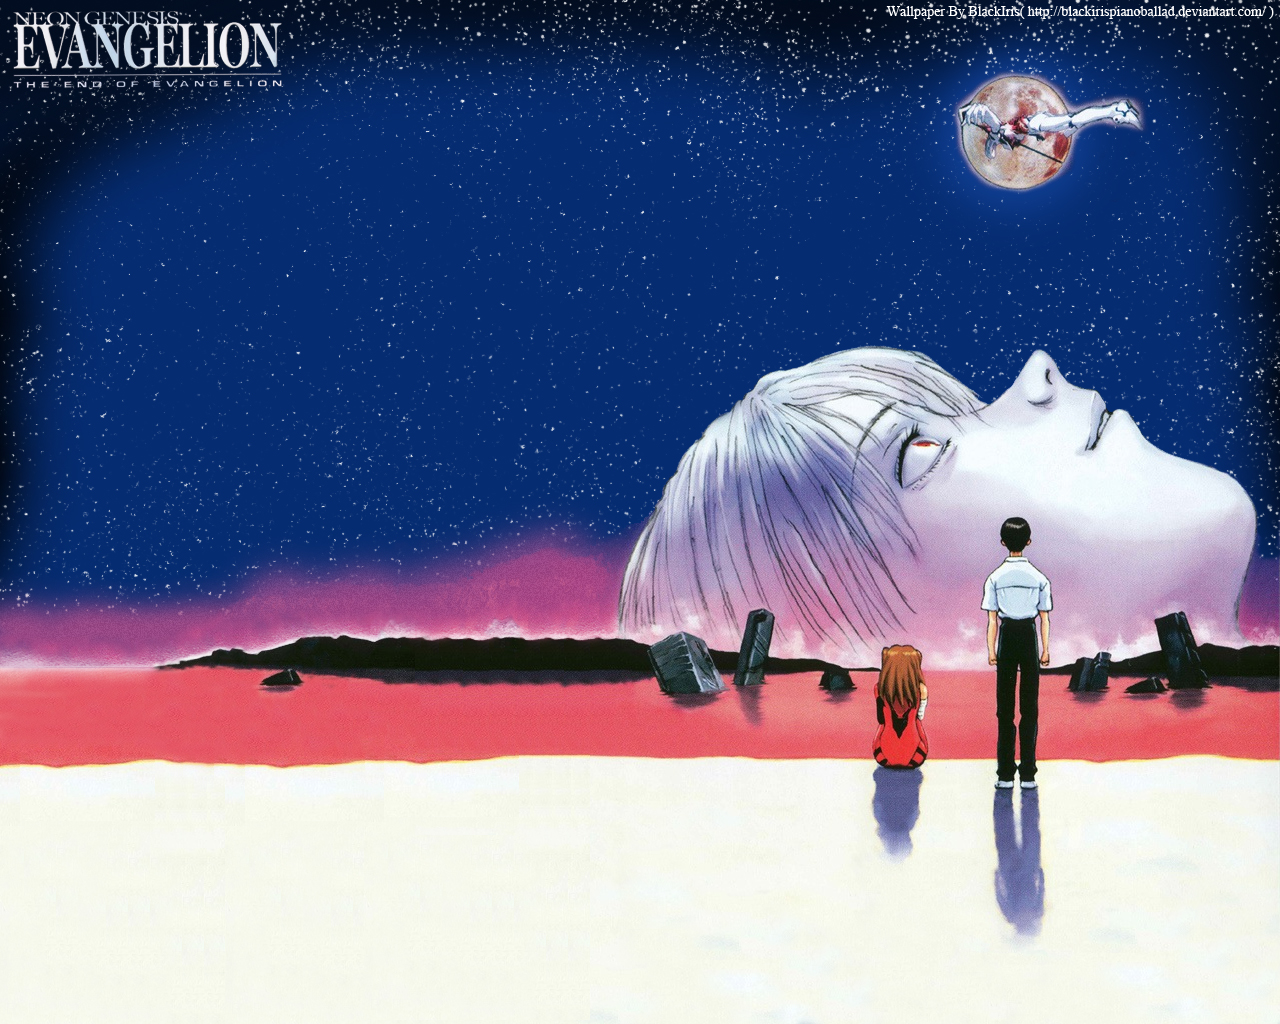 The end of Evangelion   漫画イラスト, イラスト, アニメ